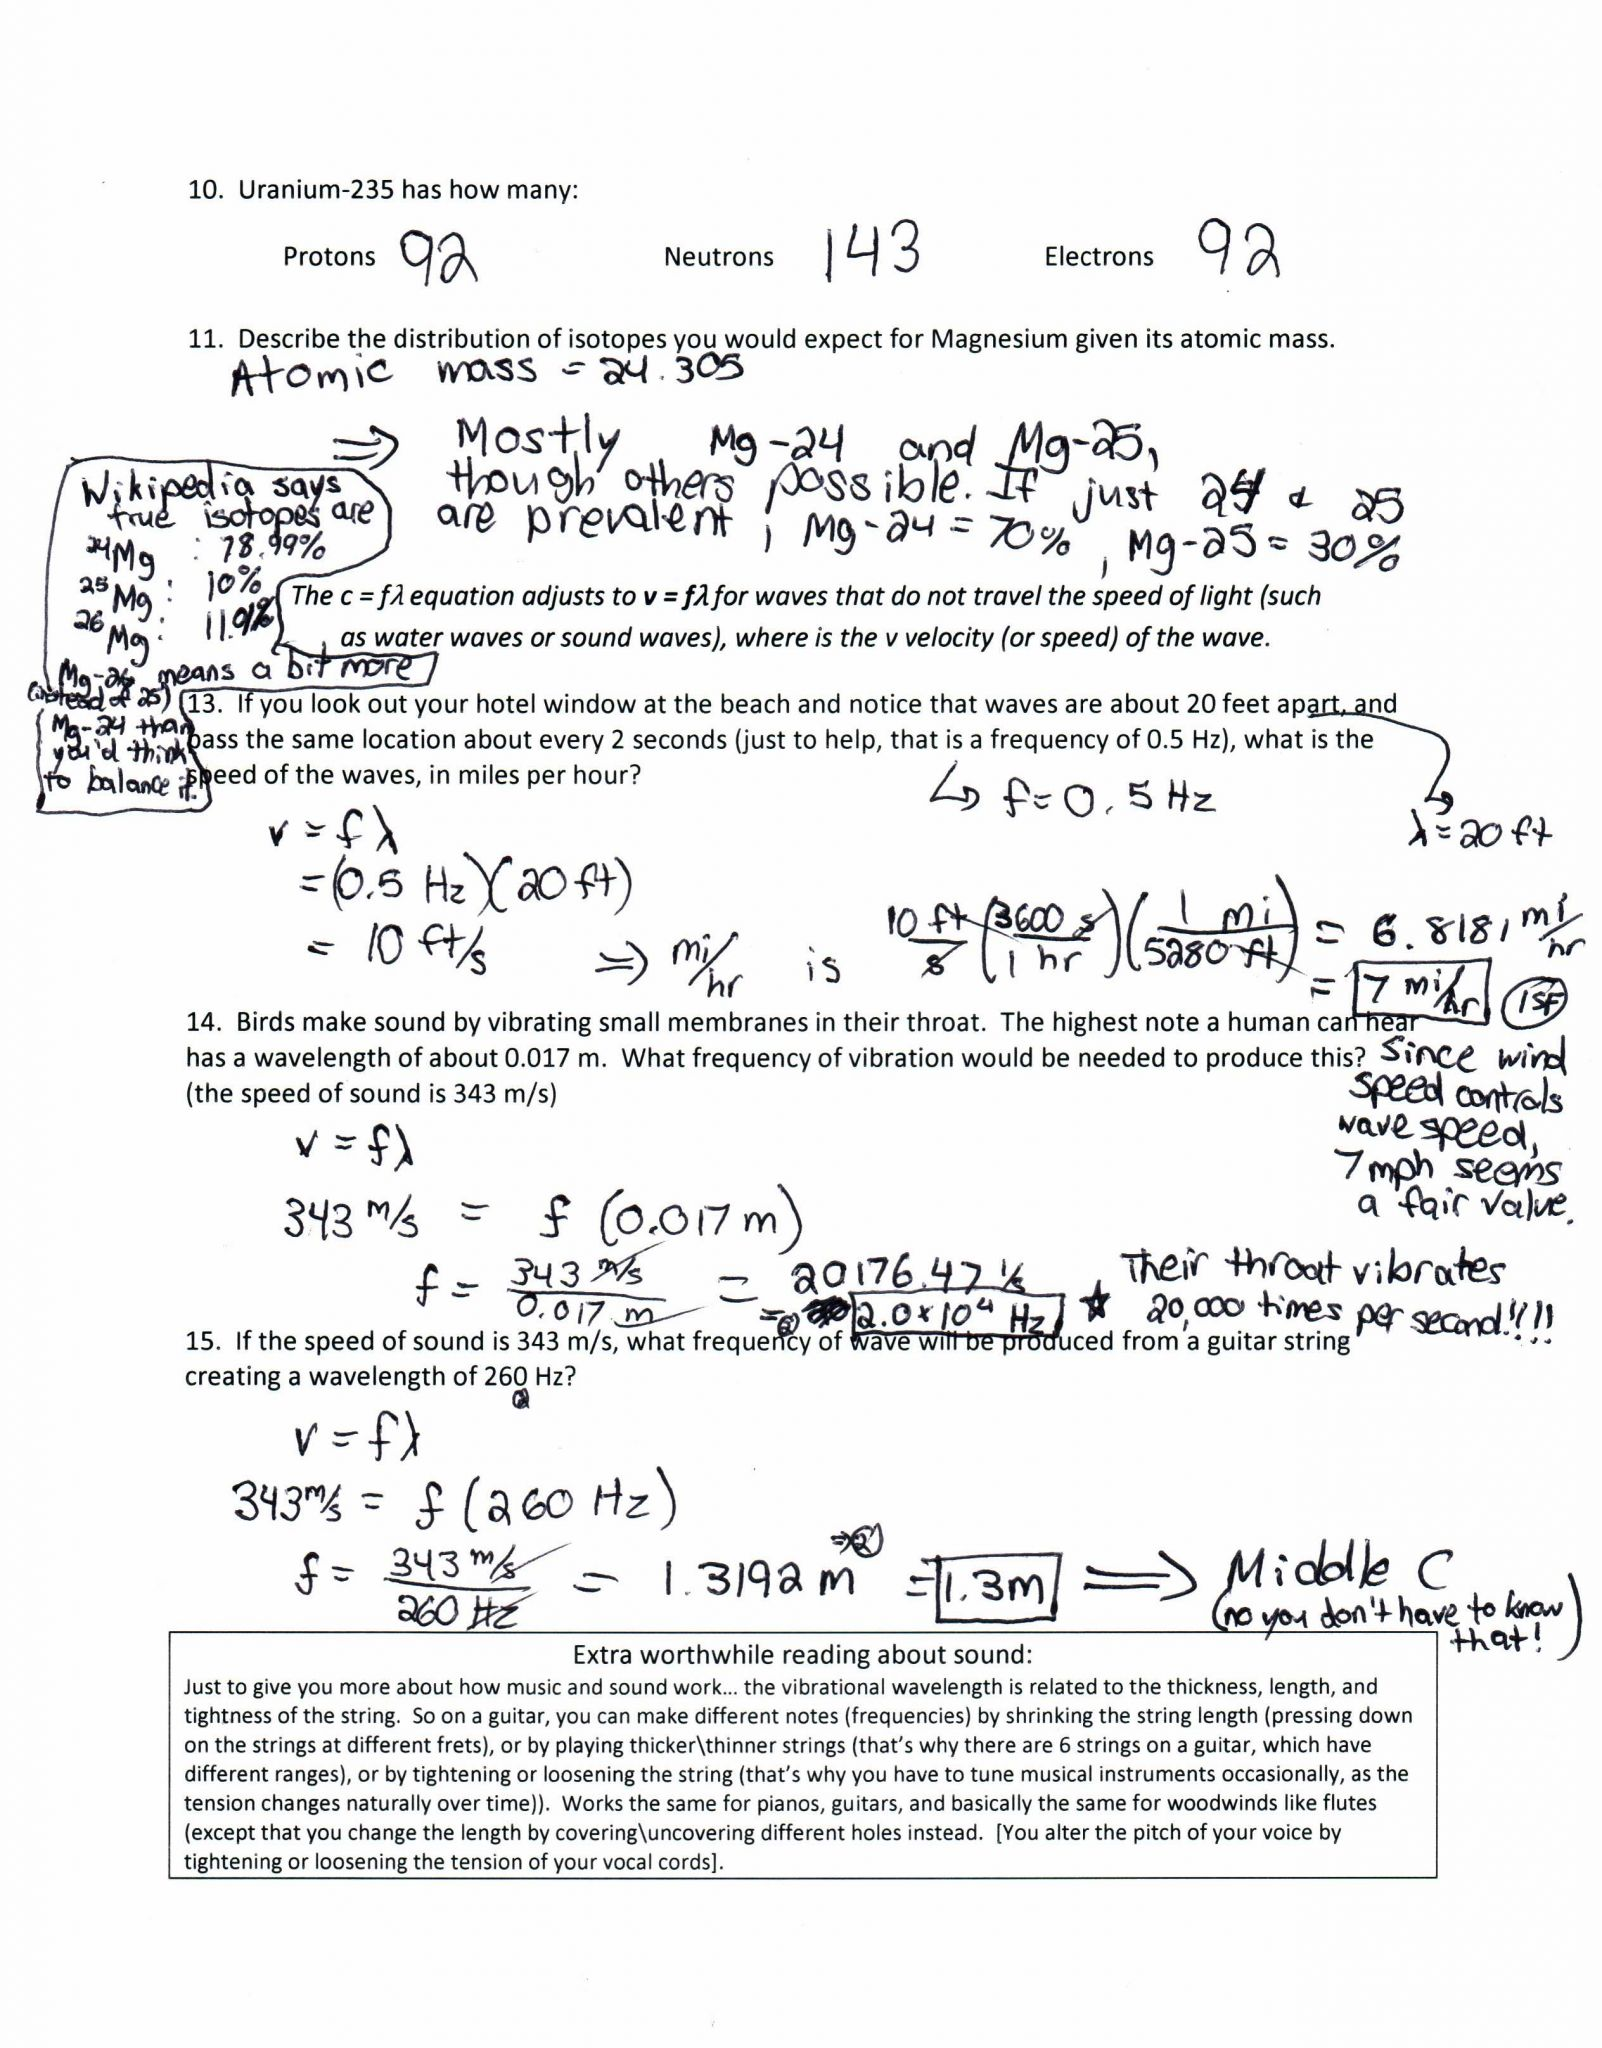 An Inconvenient Truth Worksheet Answers as Well as Ideal Gas Law Worksheet Answers Gallery Worksheet Math for Kids